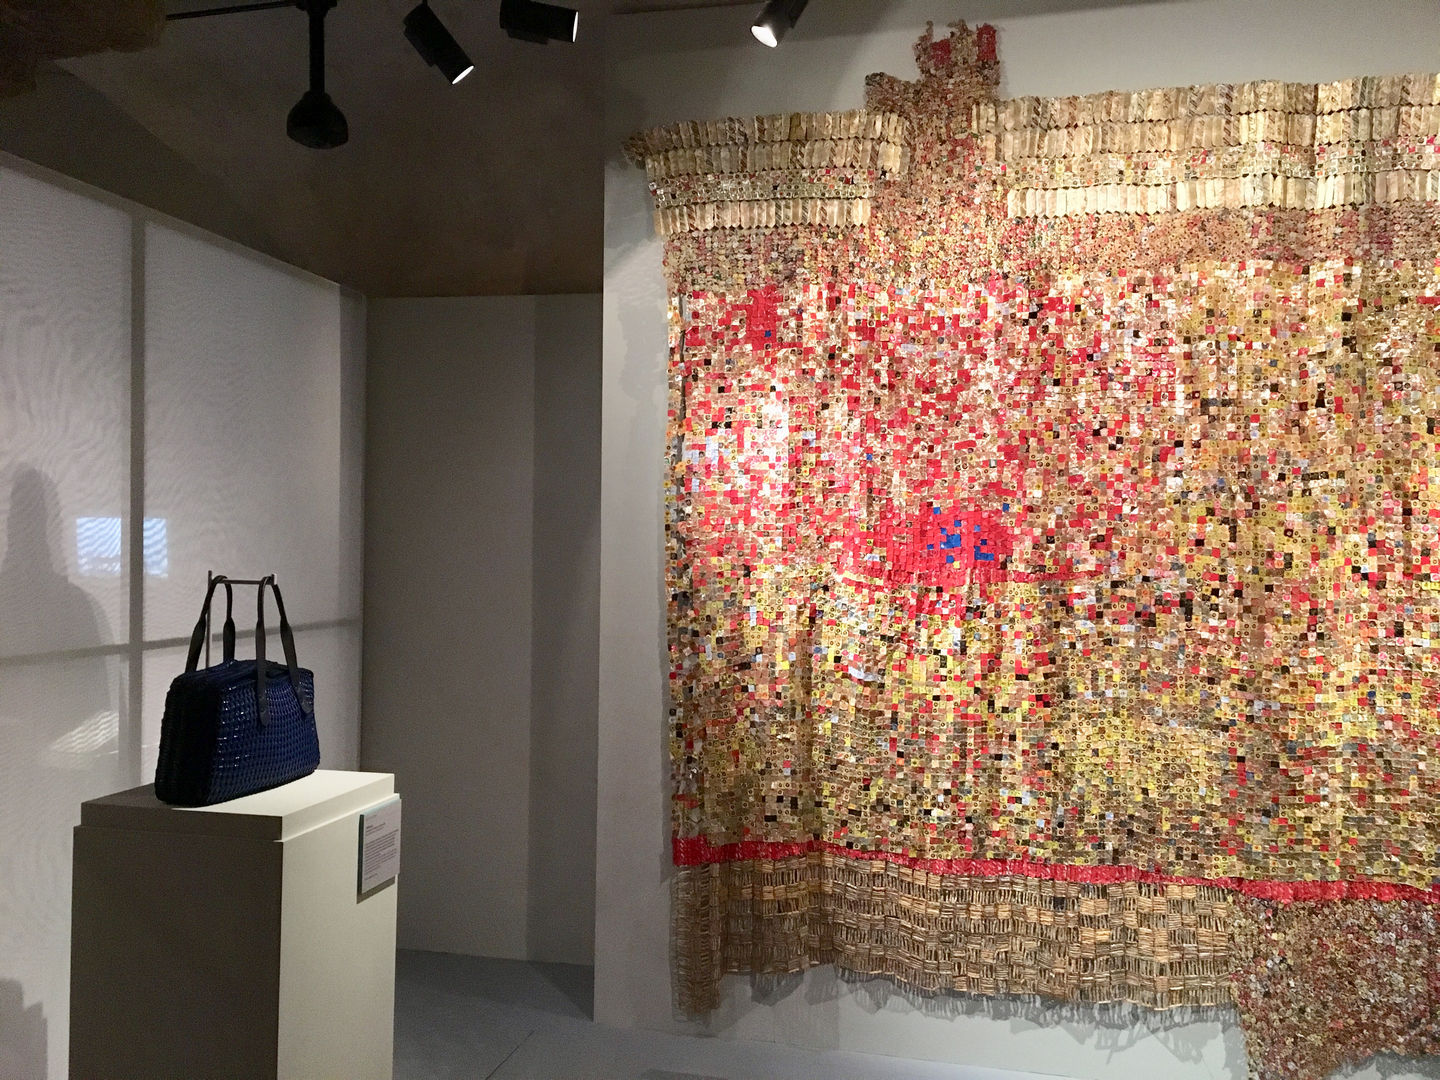 The Sustainable Thinking exhibition at Museo Salvatore Ferragamo, Florence, Italy